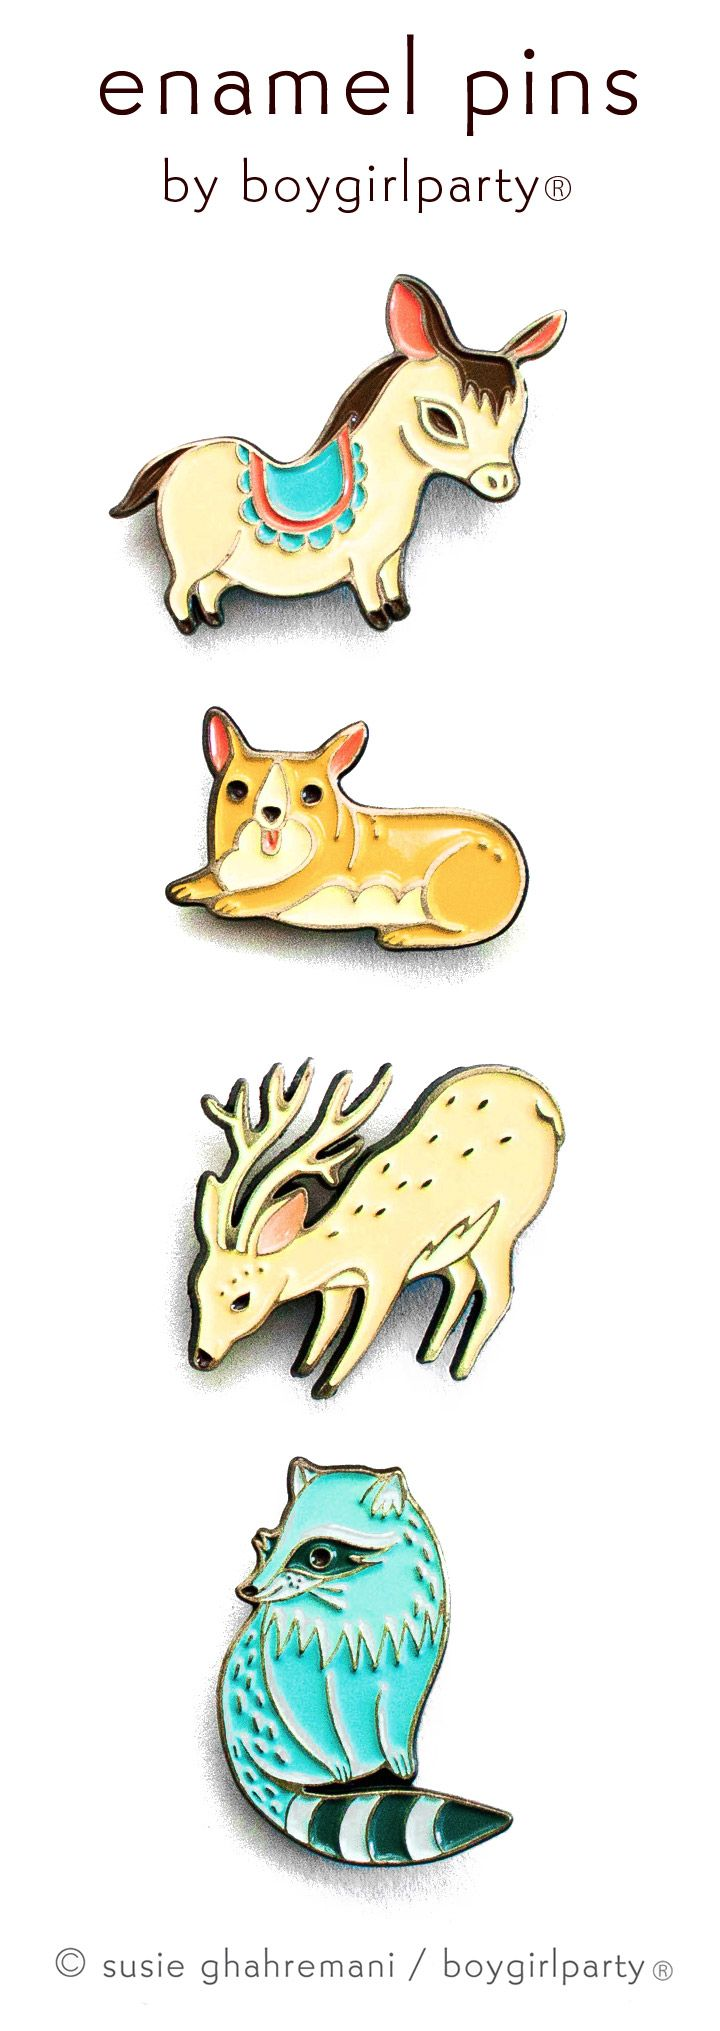 Enamel Pins by Boygirlparty / Susie Ghahremani @boygirlparty -- available at http://shop.boygirlparty.com